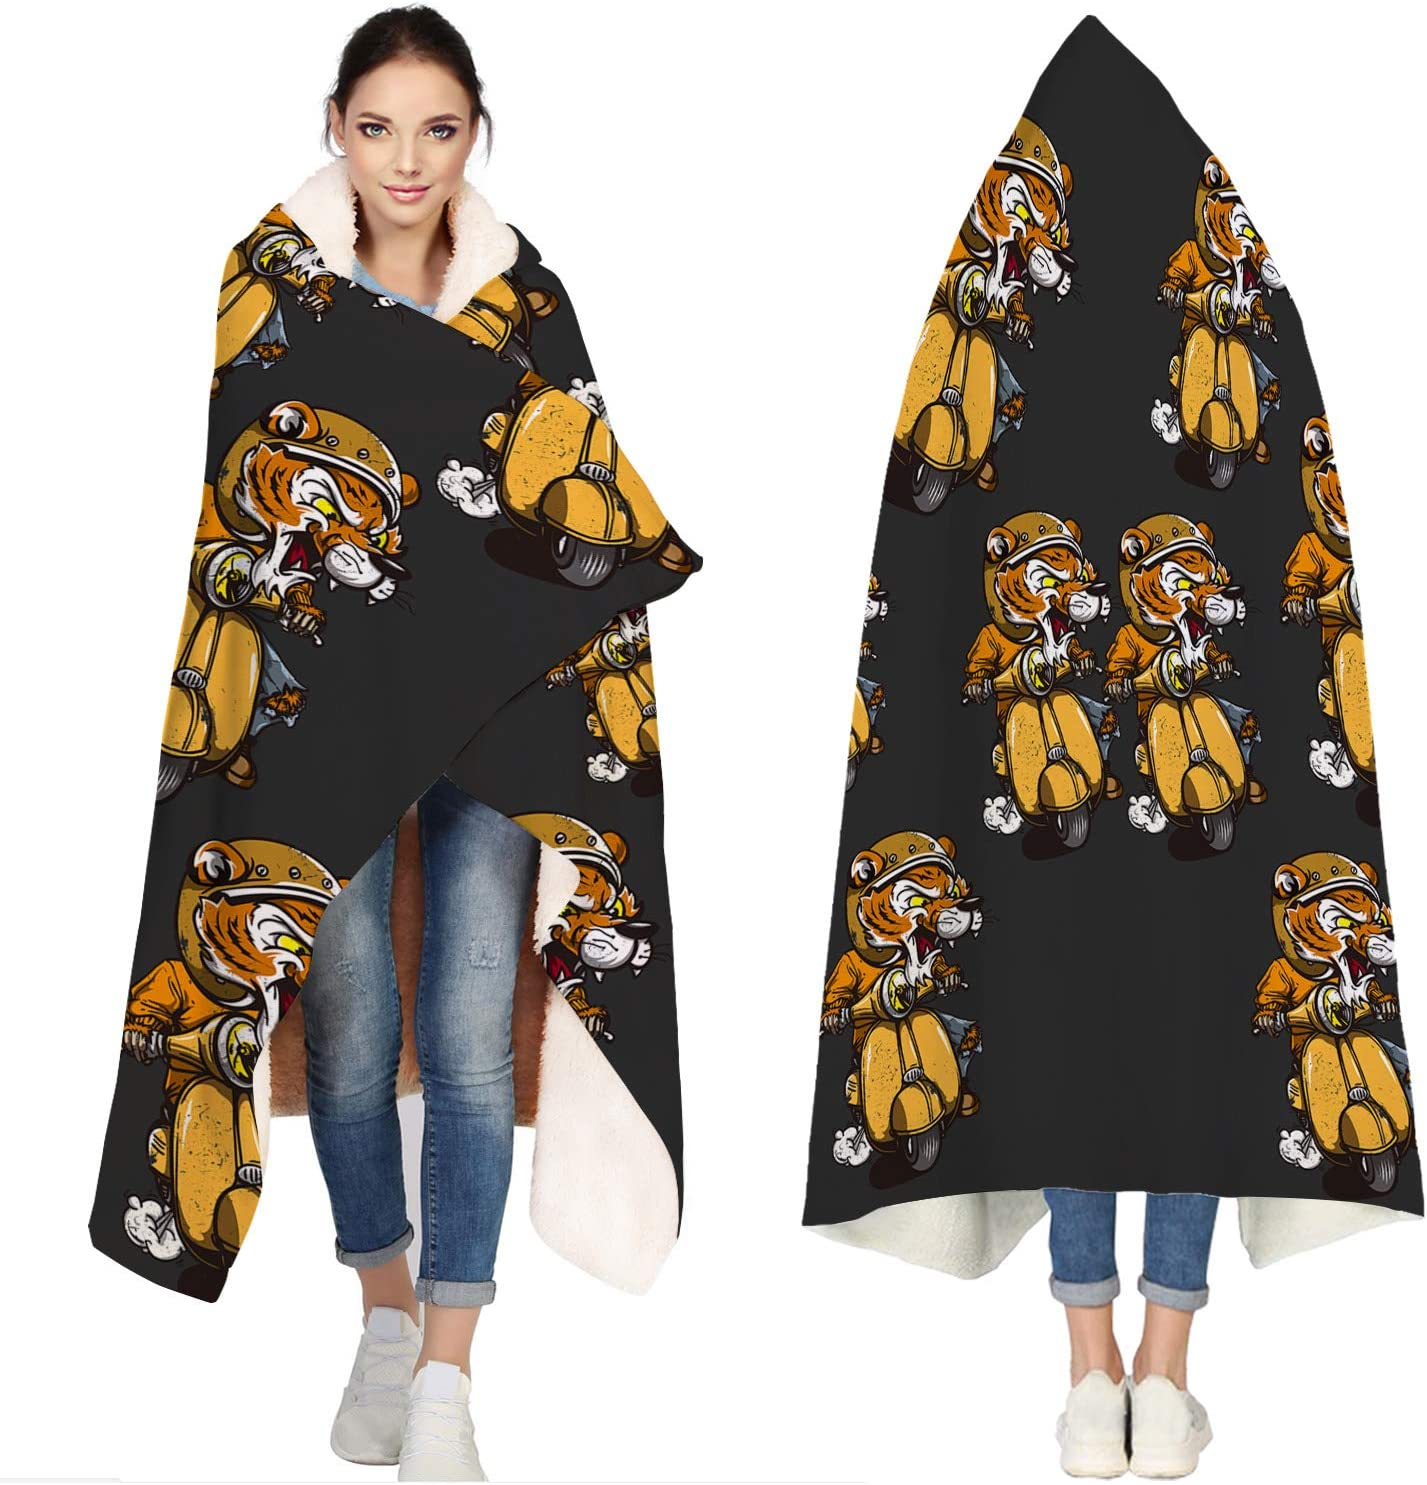 Albuquerque Mall Seven Roses Hooded Blankets Outlet sale feature for Cartoon Motorcycle Adults Tiger